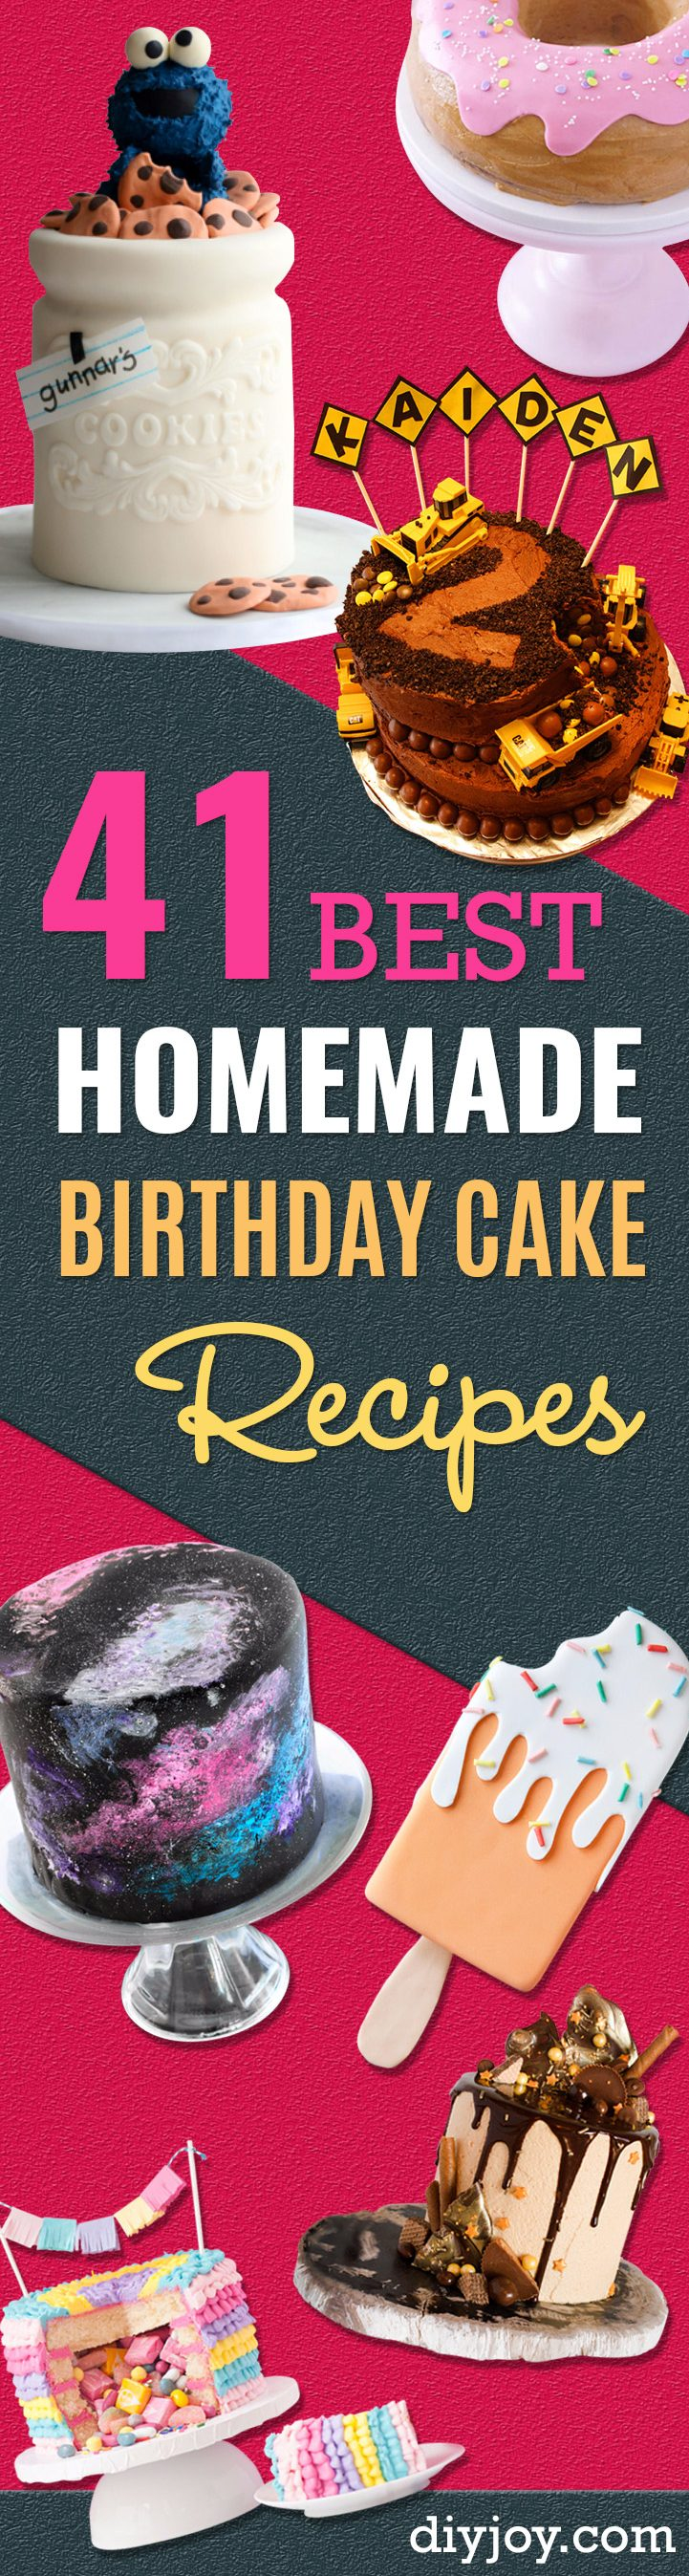 41 Best Homemade Birthday Cake Recipes